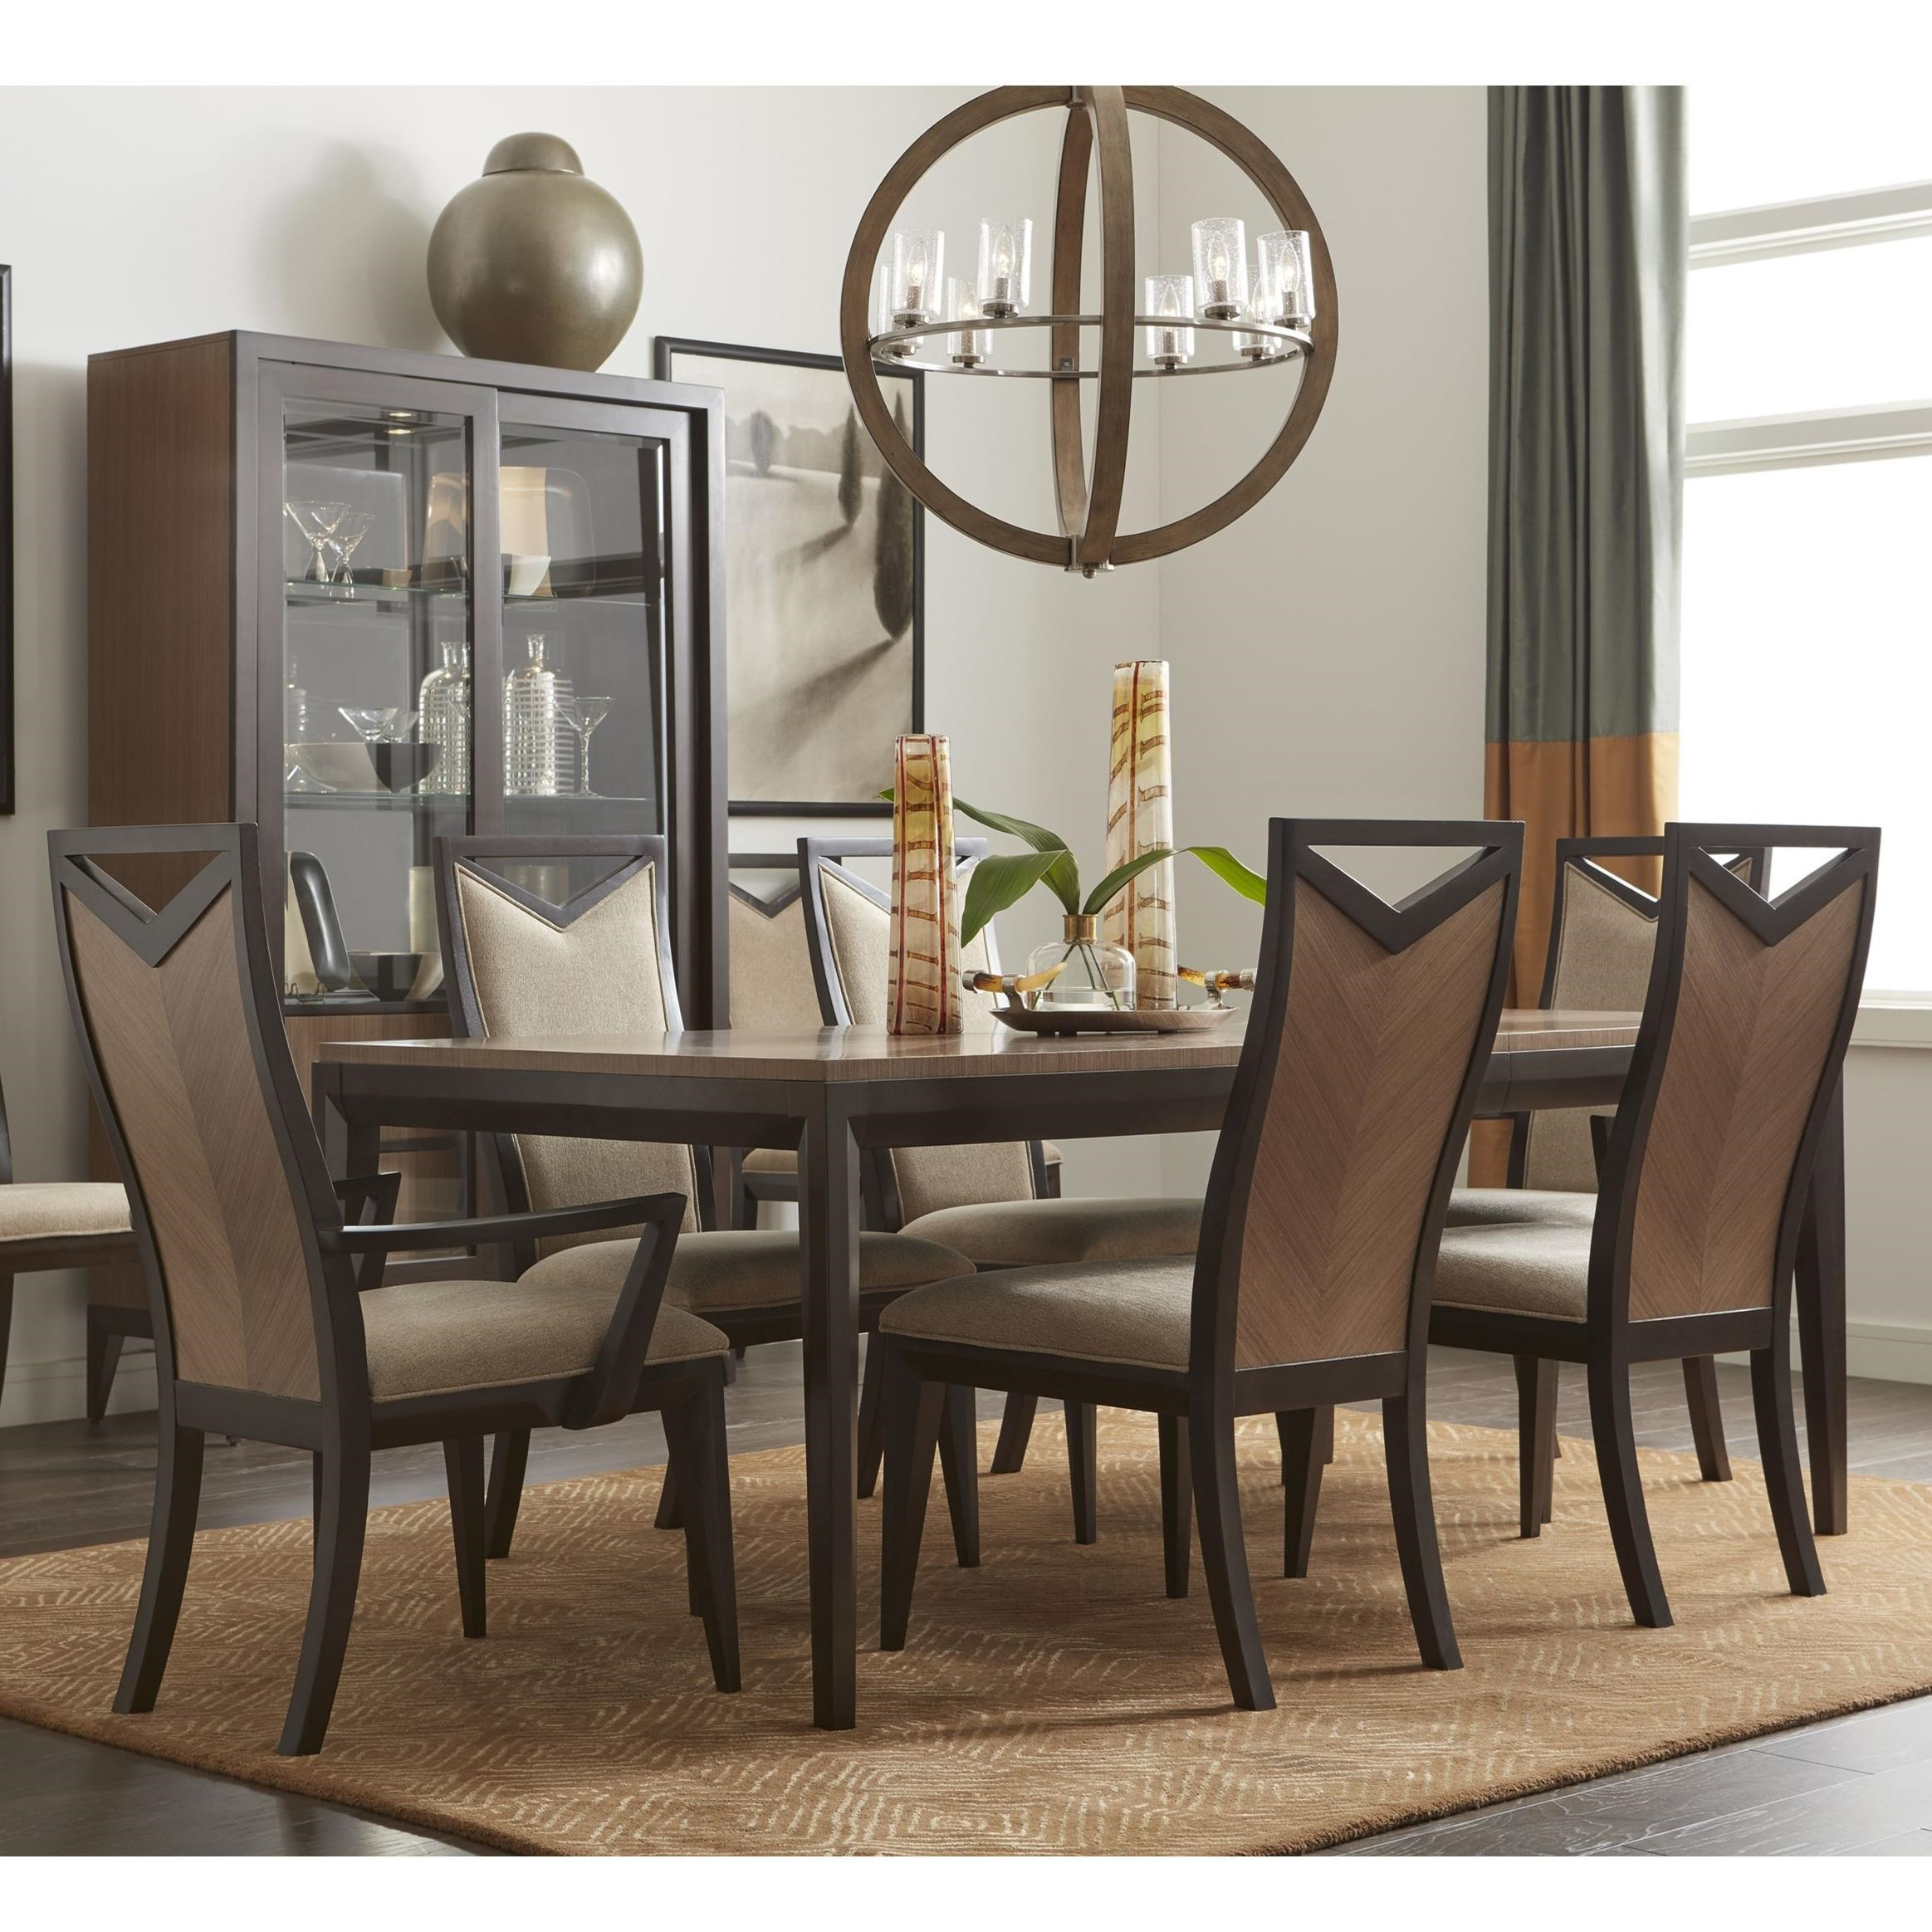 Legacy classic urban rhythm 7 piece dining set belfort for Legacy classic dining room furniture